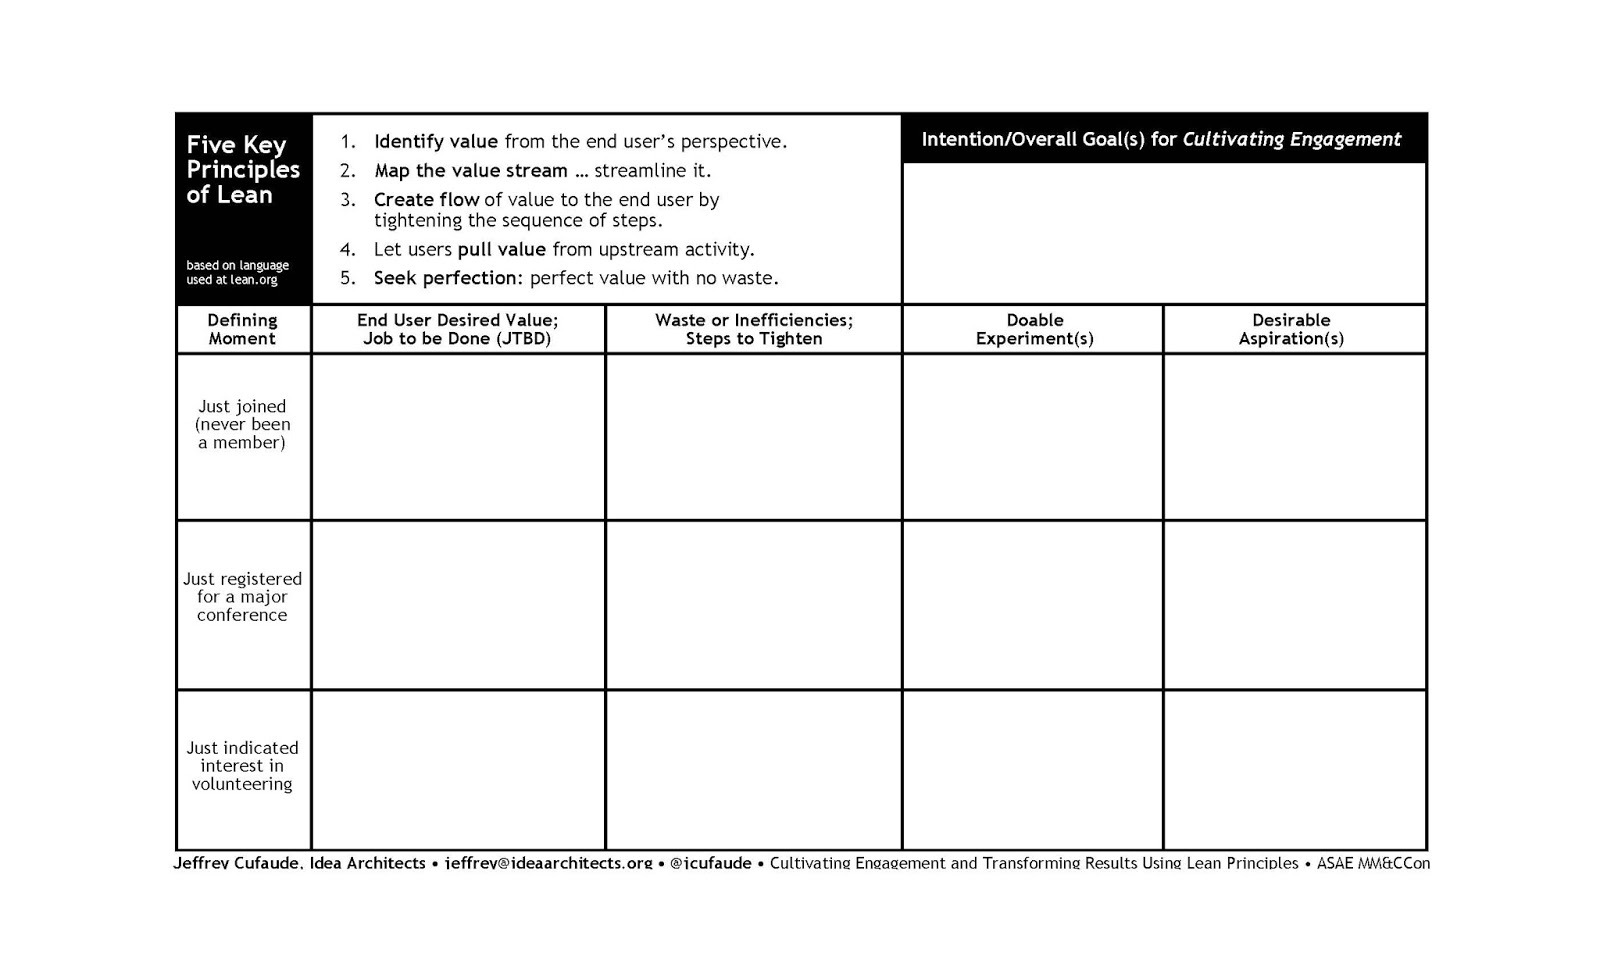 jeffrey cufaude idea architects  the third segment the lab or practical application segment was introduced as a 10 minute table exercise using my worksheet participants could choose both